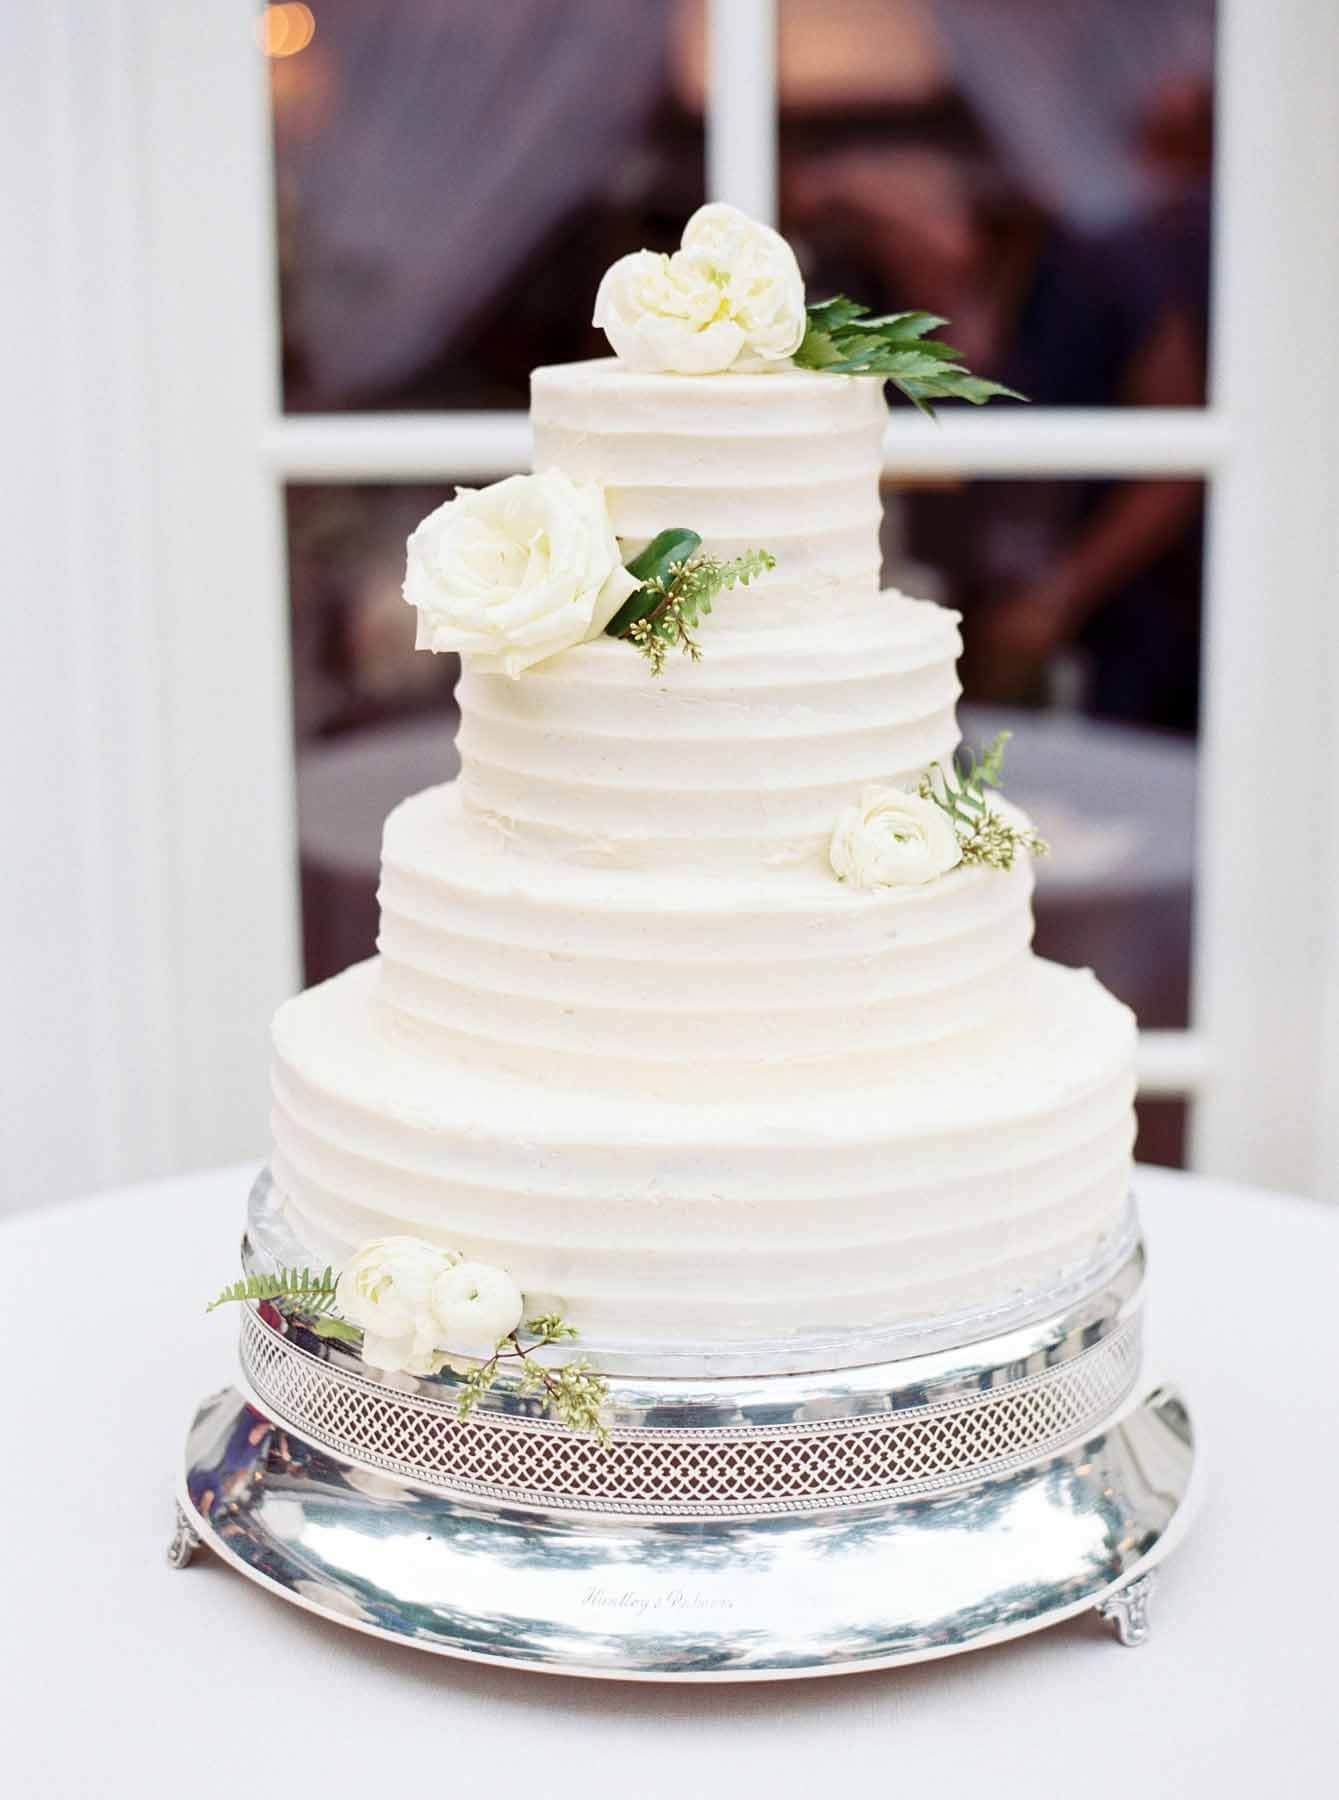 Four-tiered white wedding cake with fresh roses